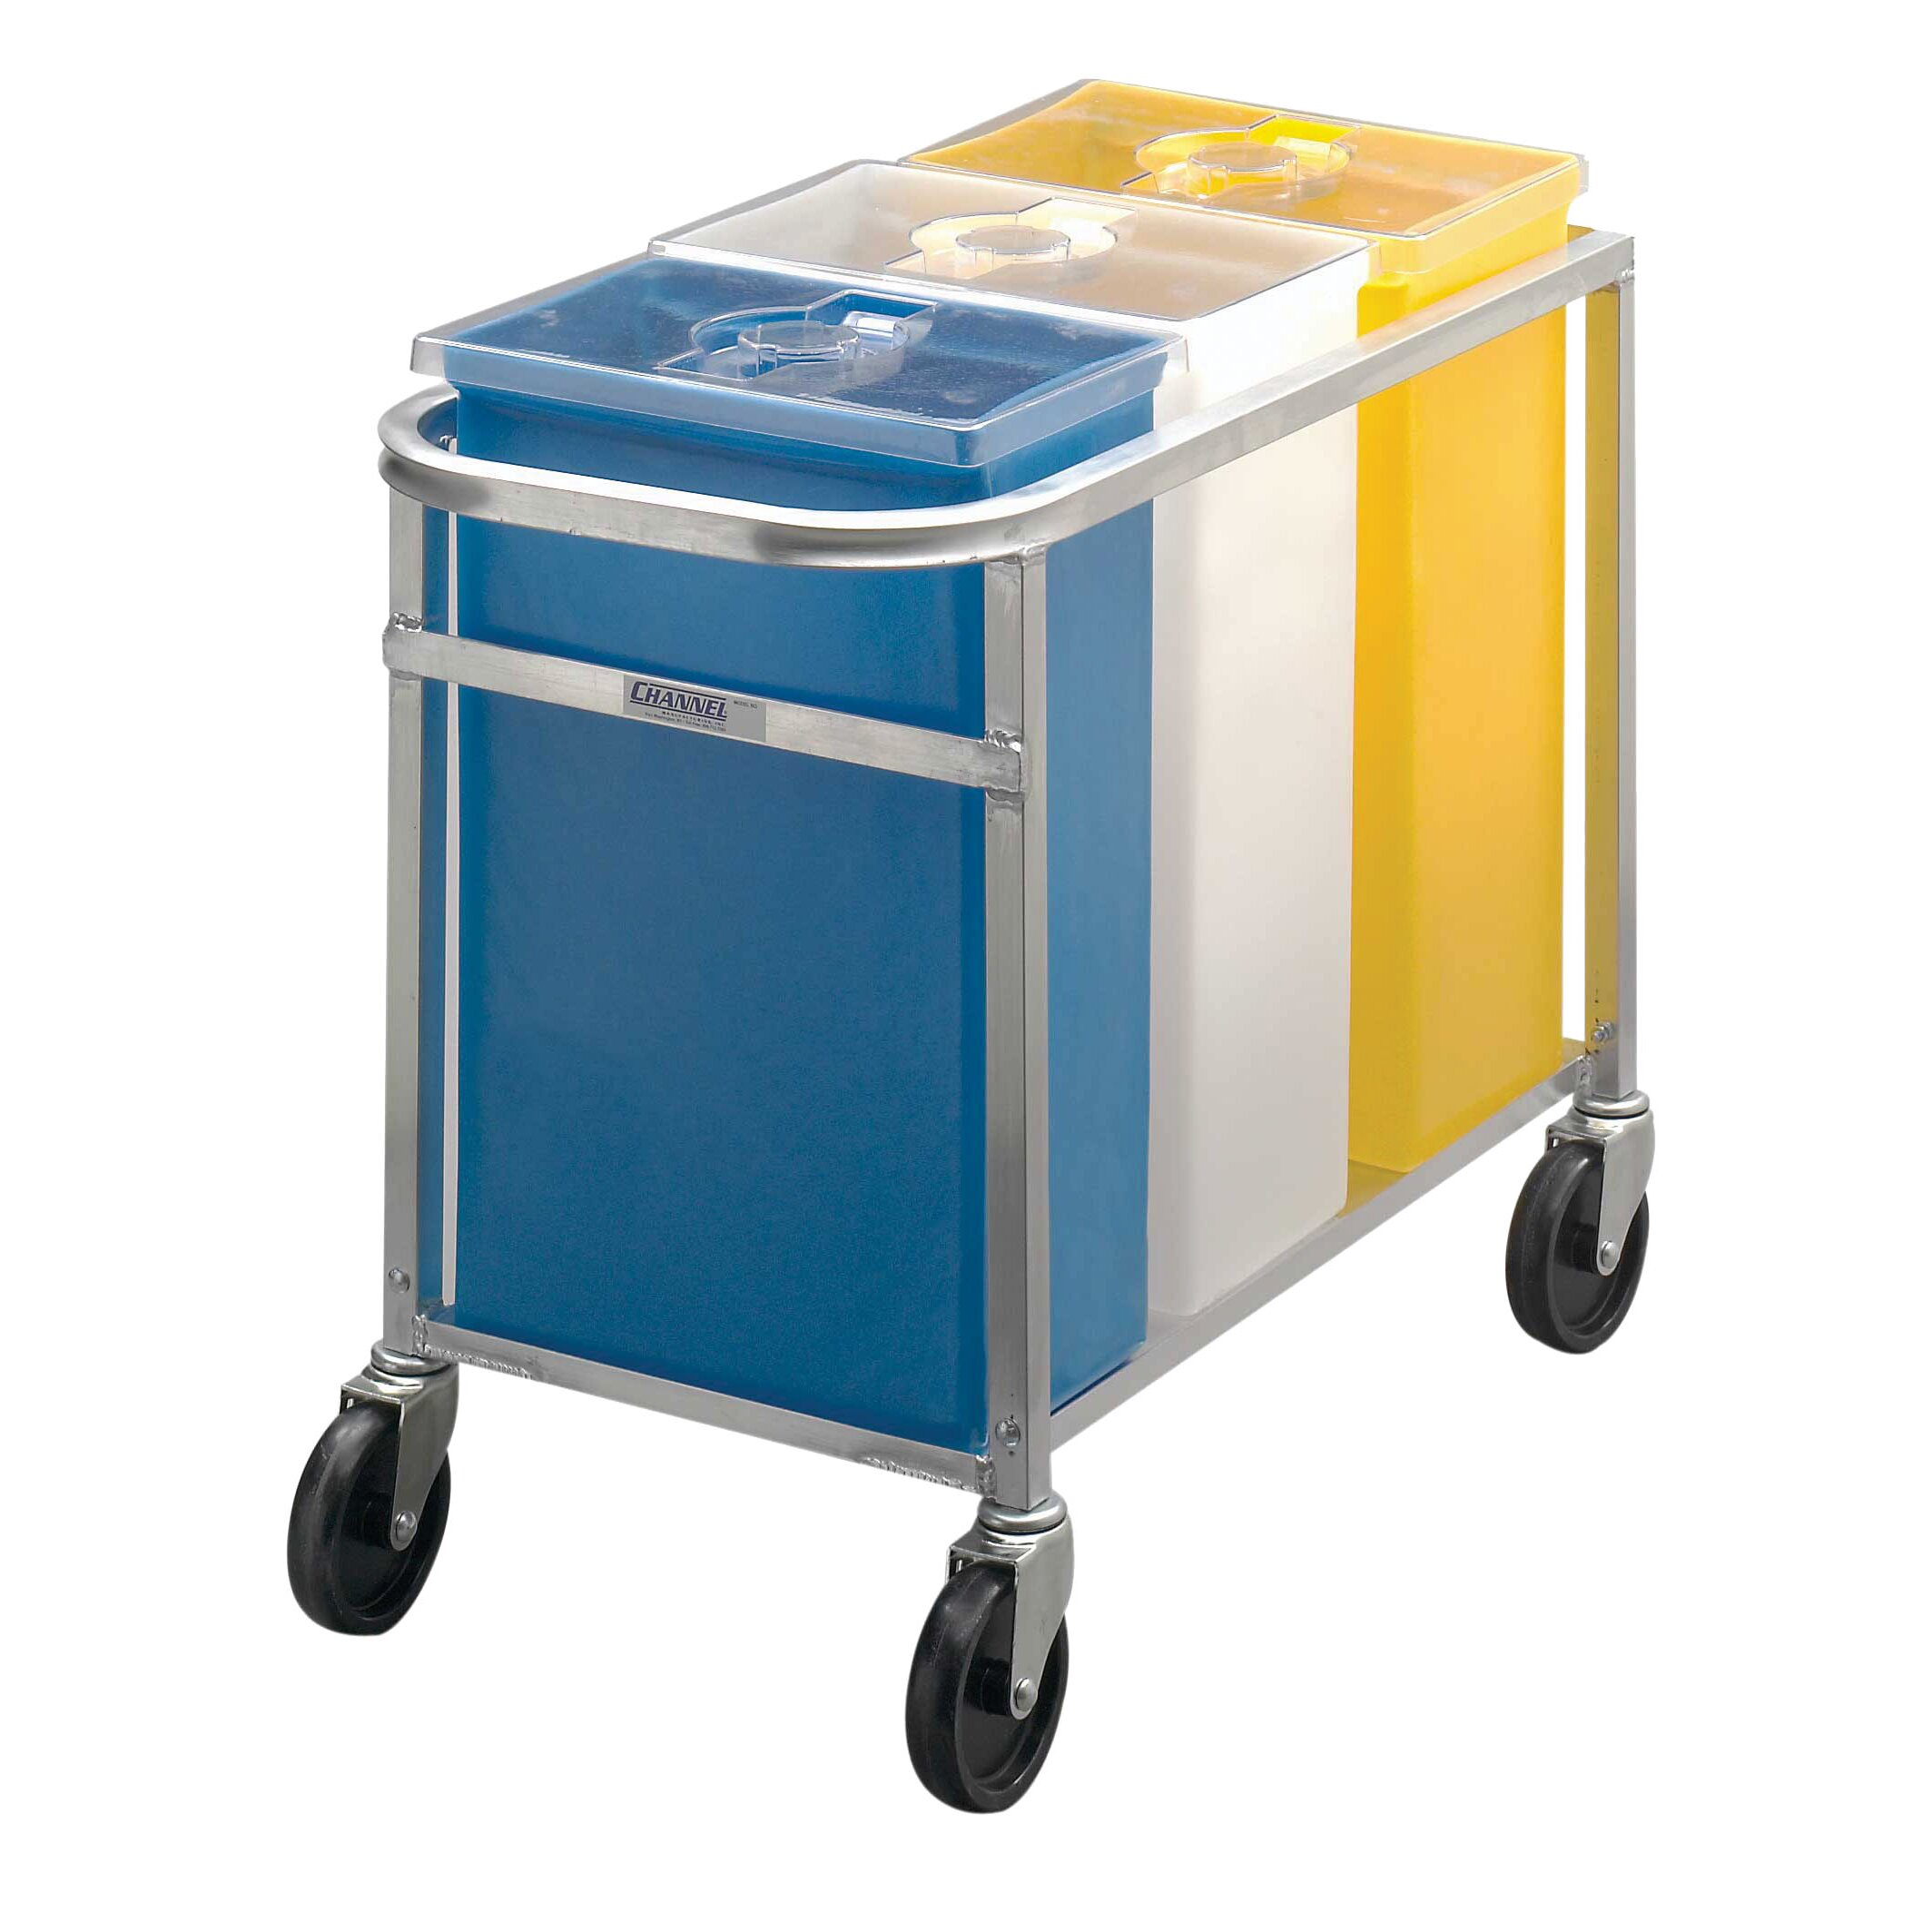 Factory Utility Cart: Channel Manufacturing Ingredient Bin Utility Cart